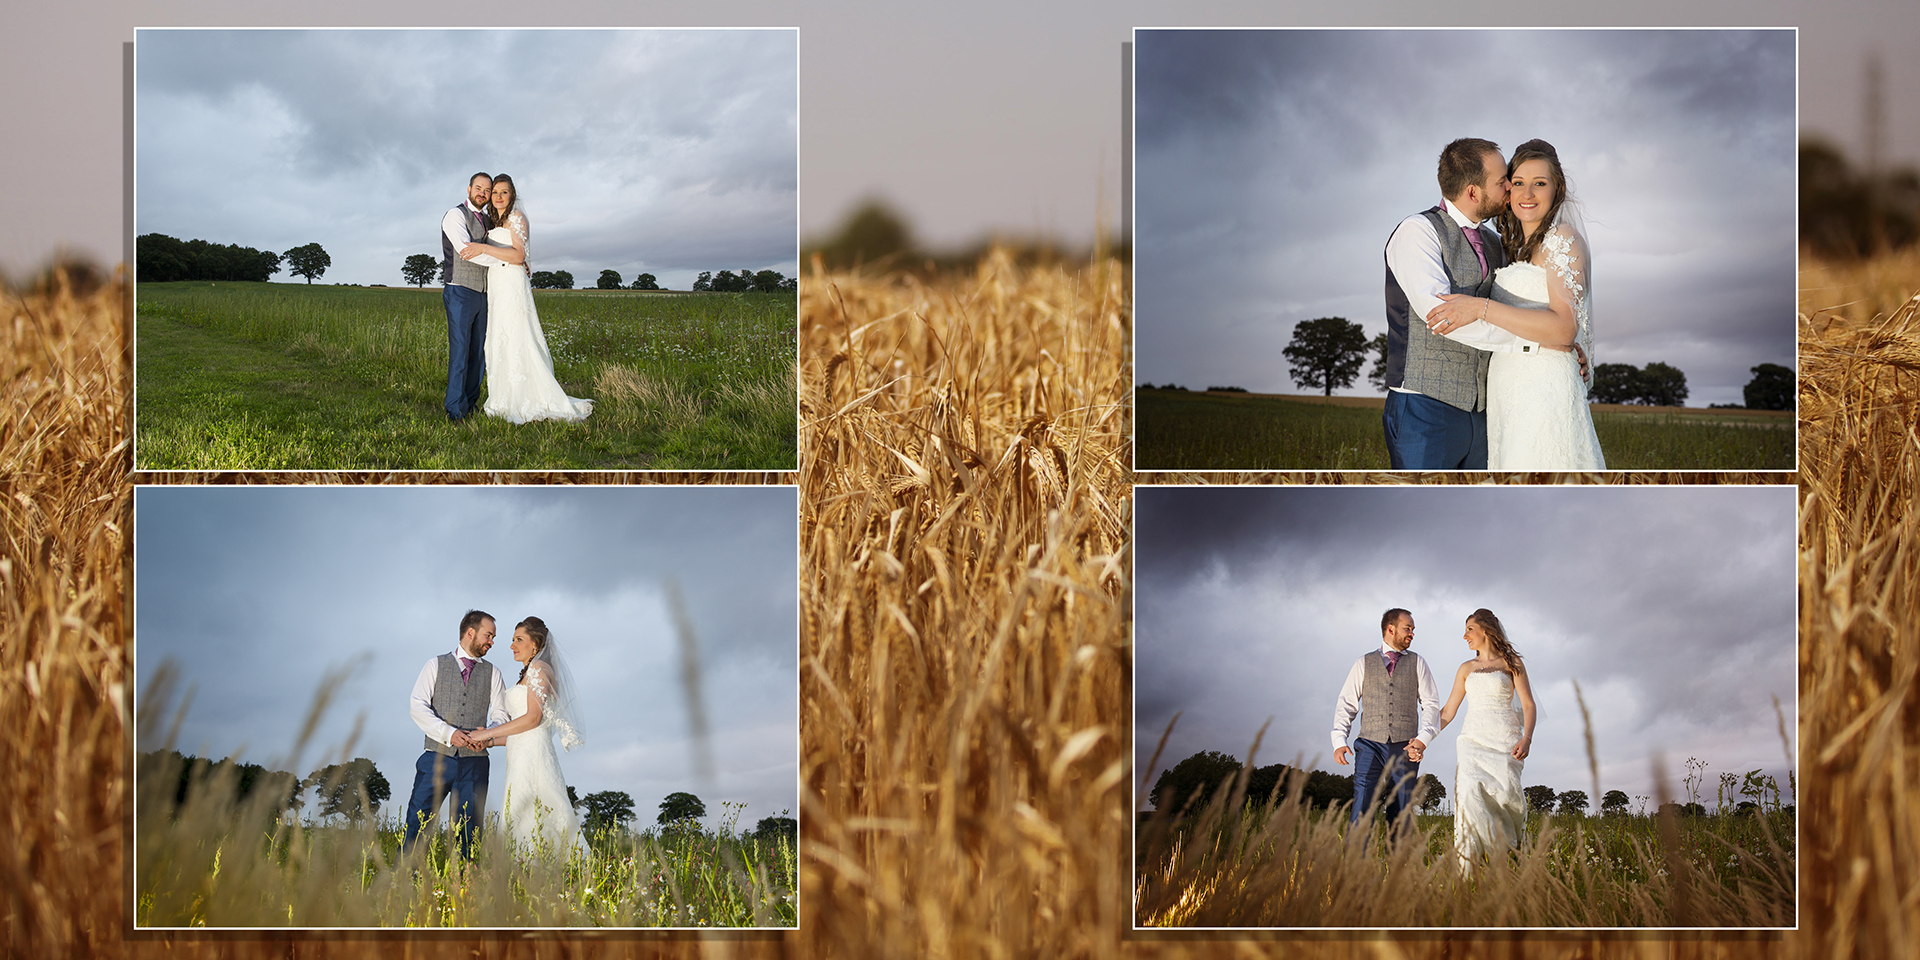 Warwickshire wedding Photography by Victoria Jane Photography